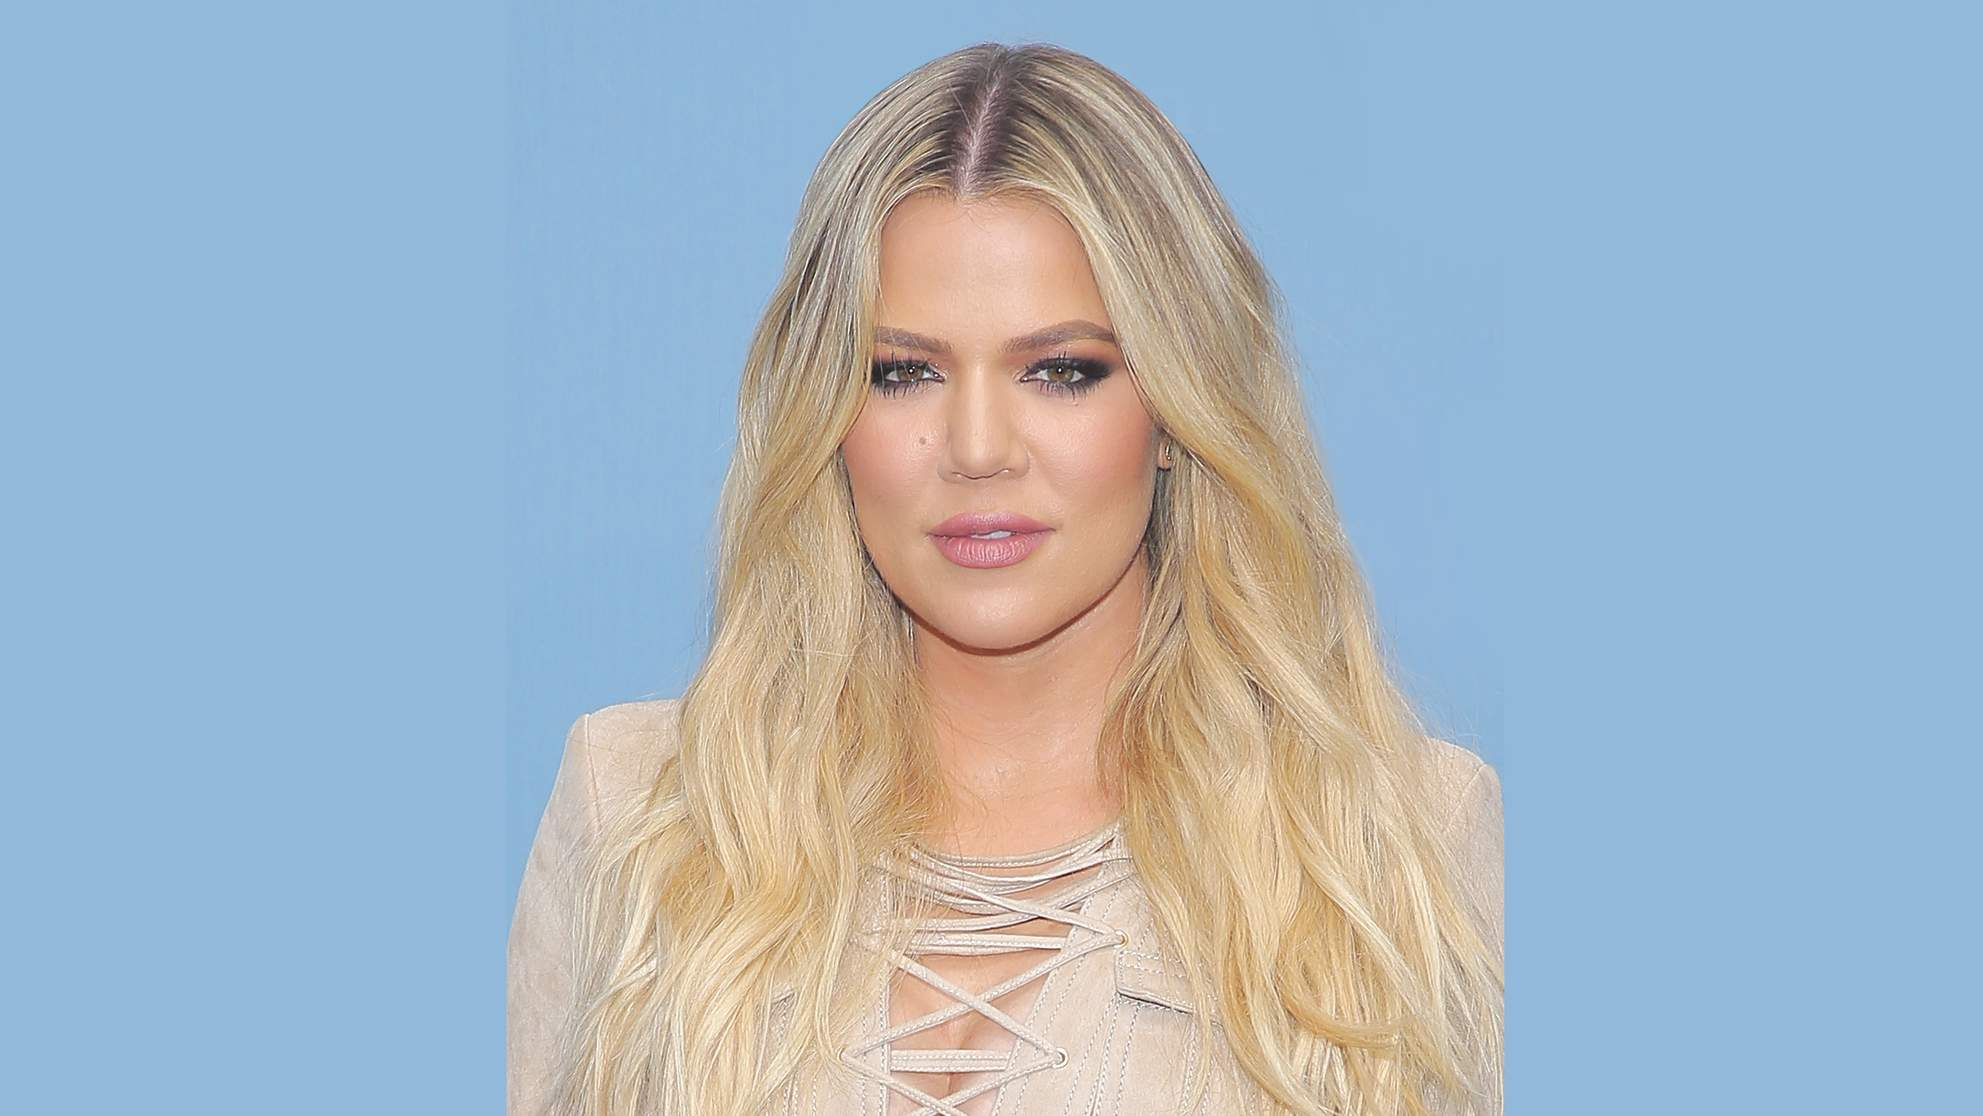 Pregnant Khloé Kardashian Details Painful First Trimester: 'I Physically Can Barely Walk'